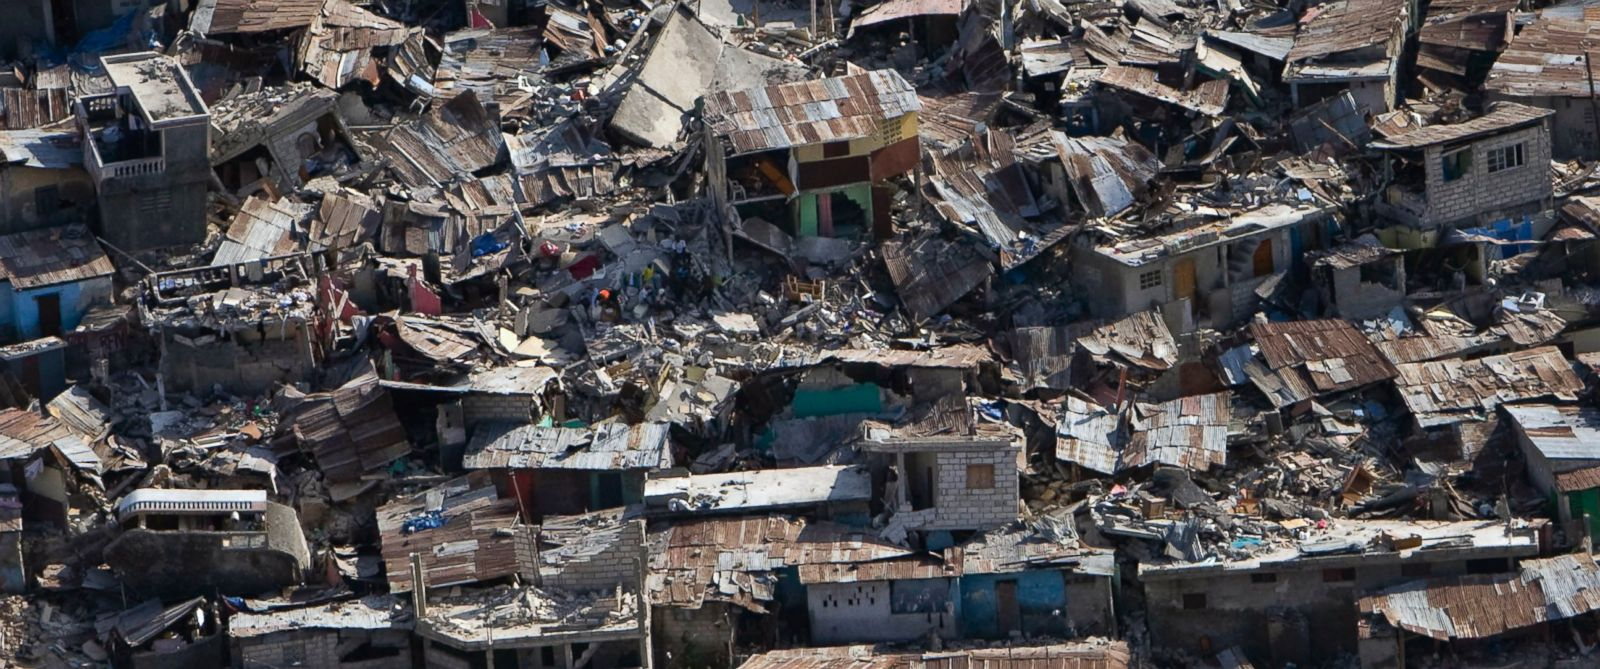 Haiti Earthquake: 5 Years Later, Country Still Feeling Aftershocks ...